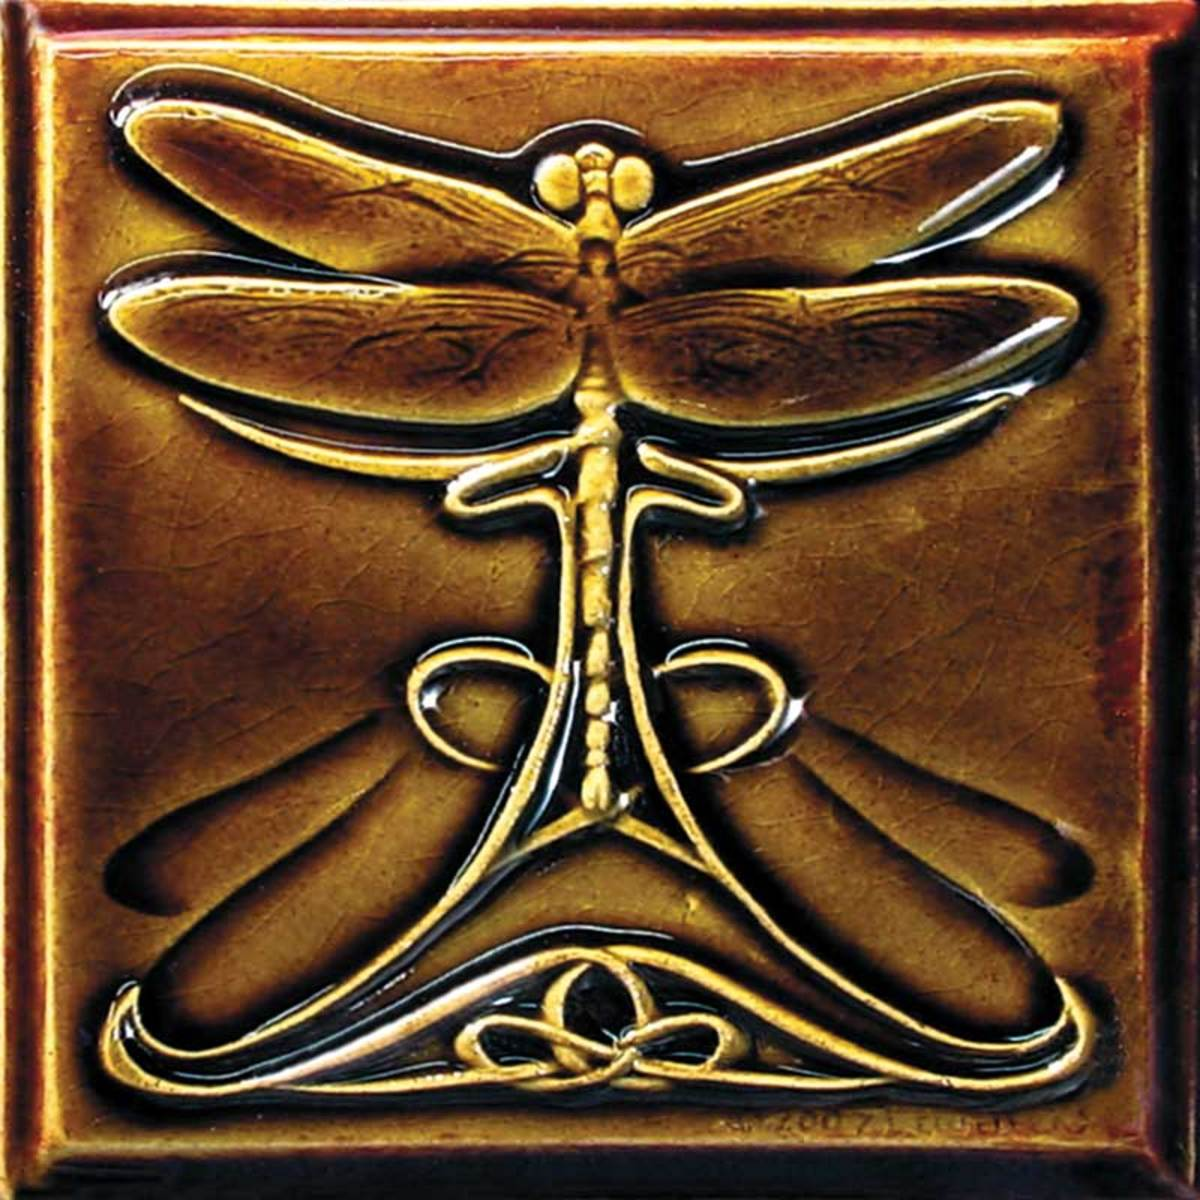 Lewellen's ceramic dragonfly tile